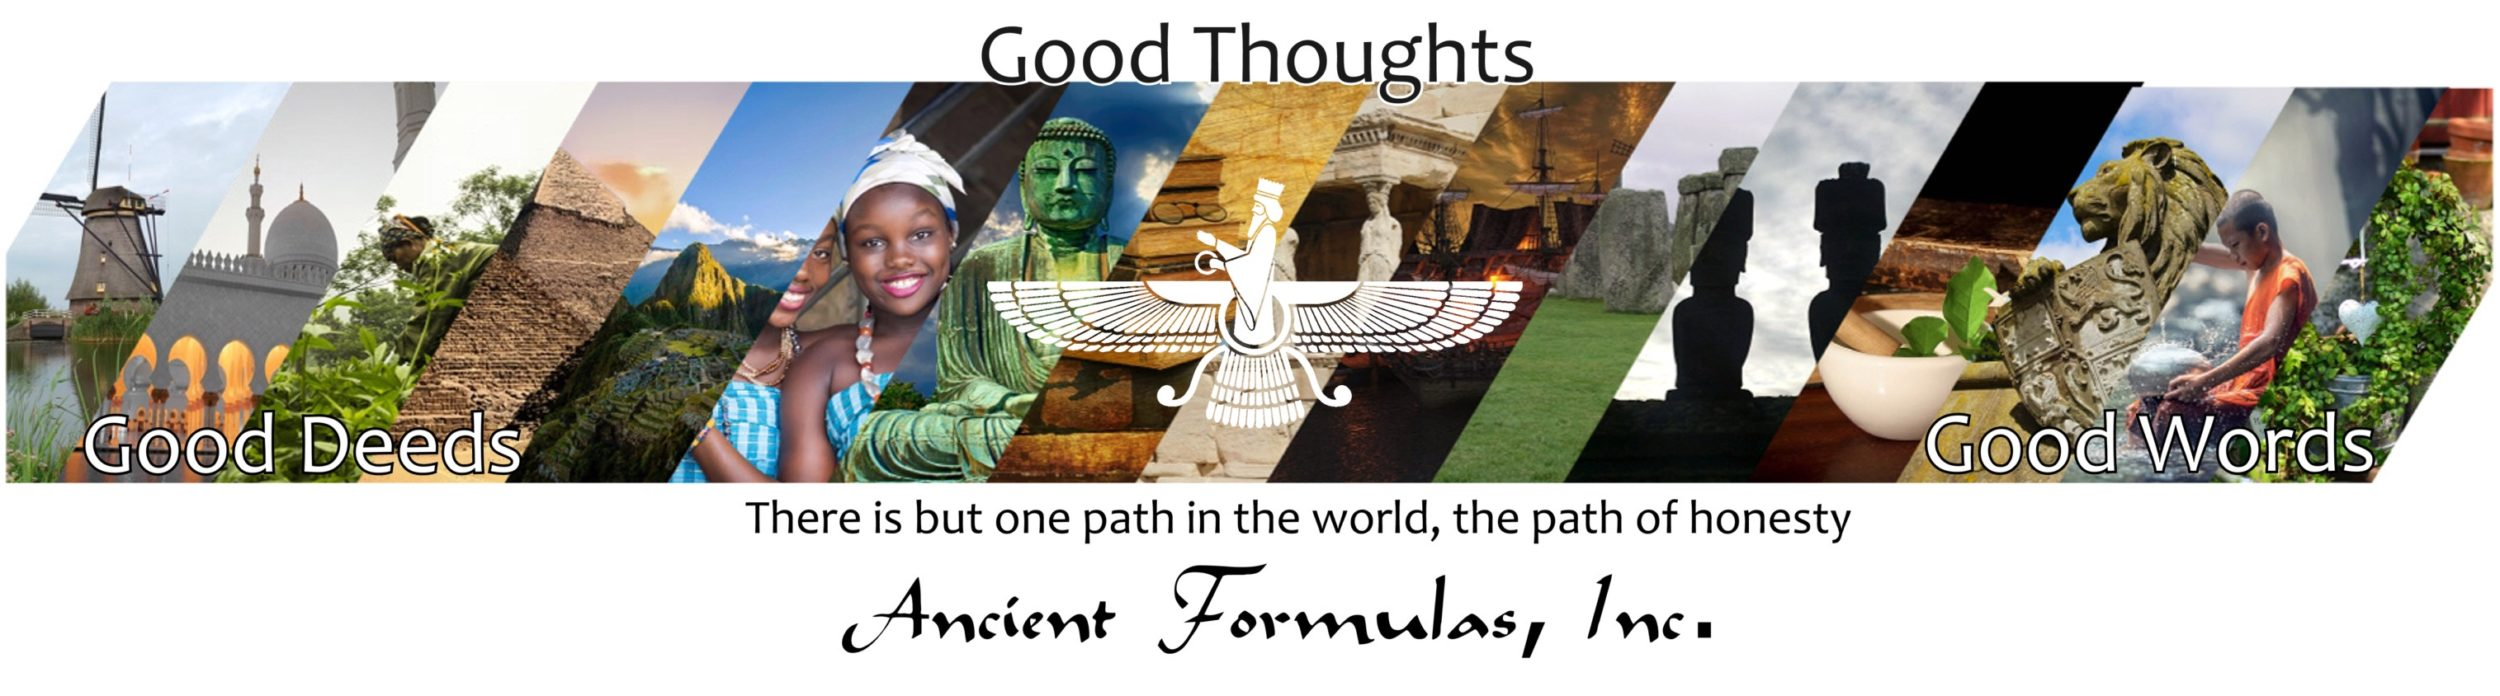 Ancient Formulas, Inc.